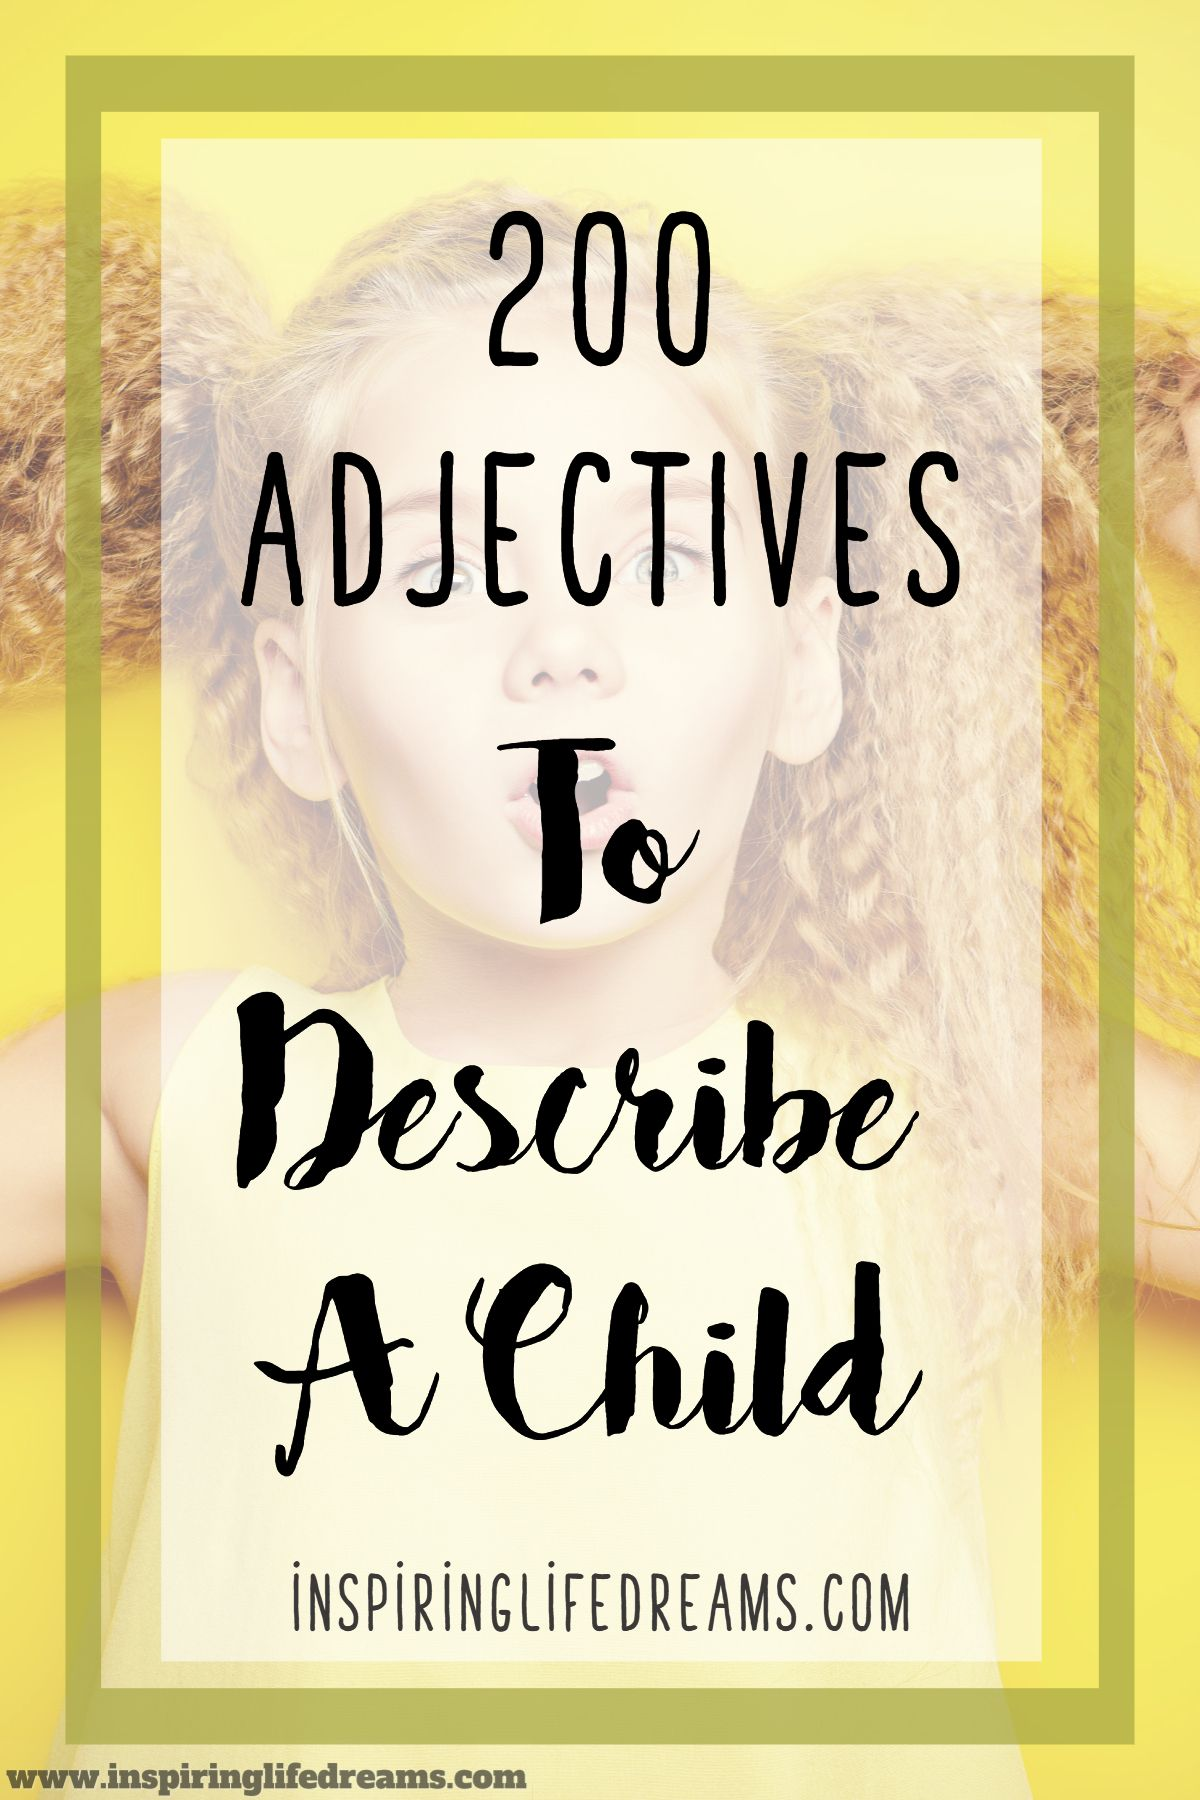 200 Positive Adjectives To Describe A Person Or Child